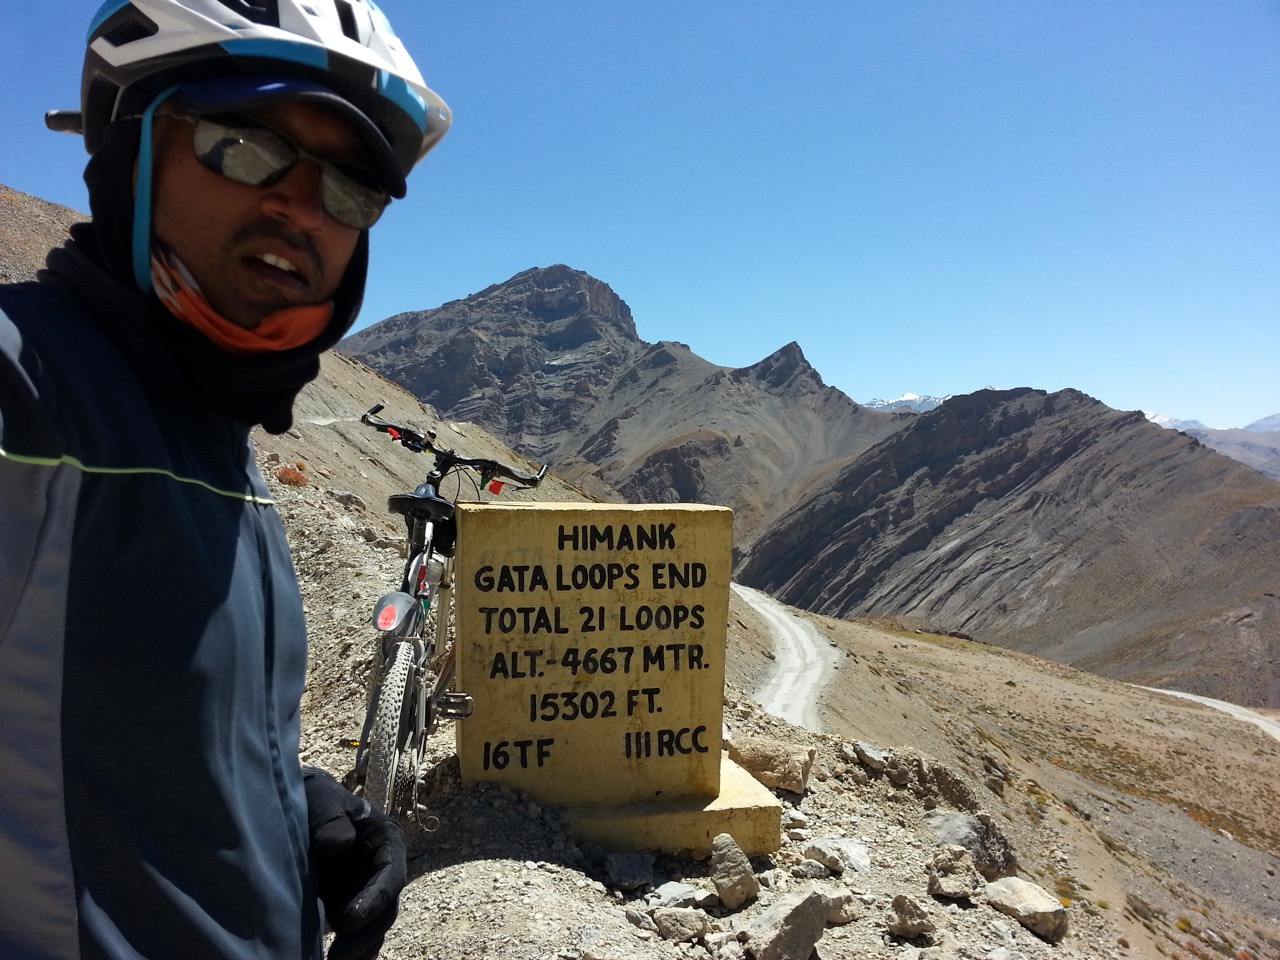 End of gata loops, 15302 ft